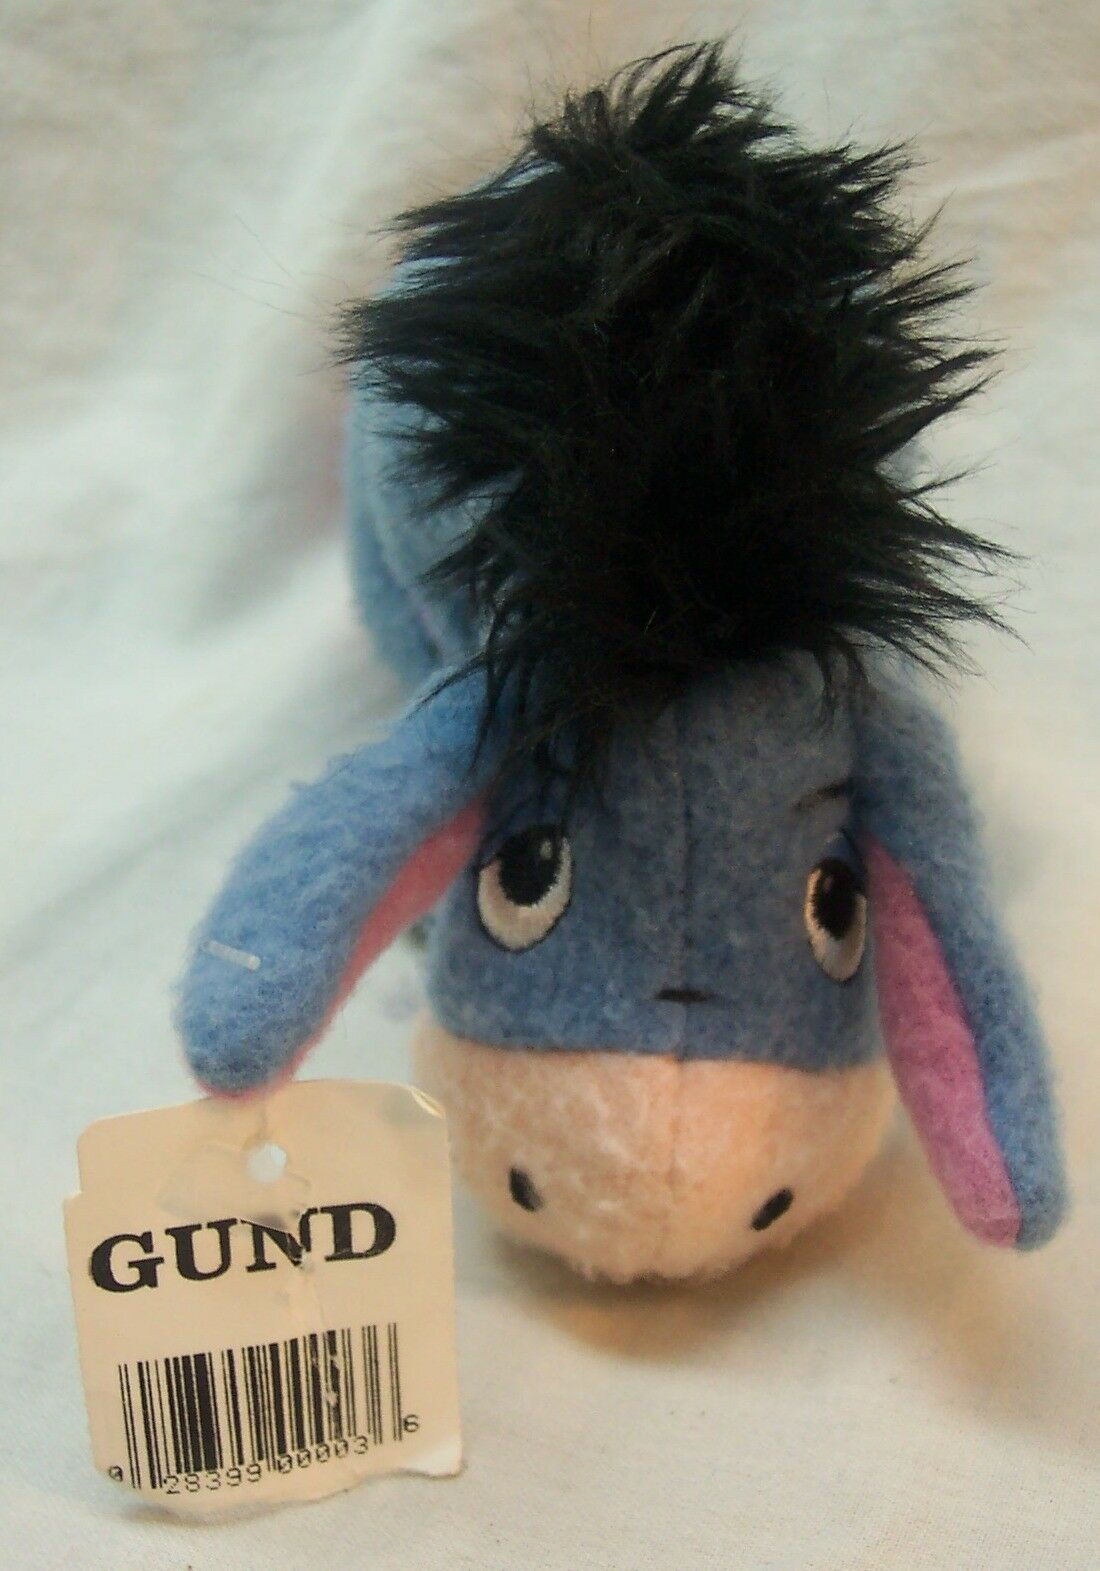 UPC 028399000036 product image for Gund Disney Winnie The Pooh Soft Fleece Eeyore 6